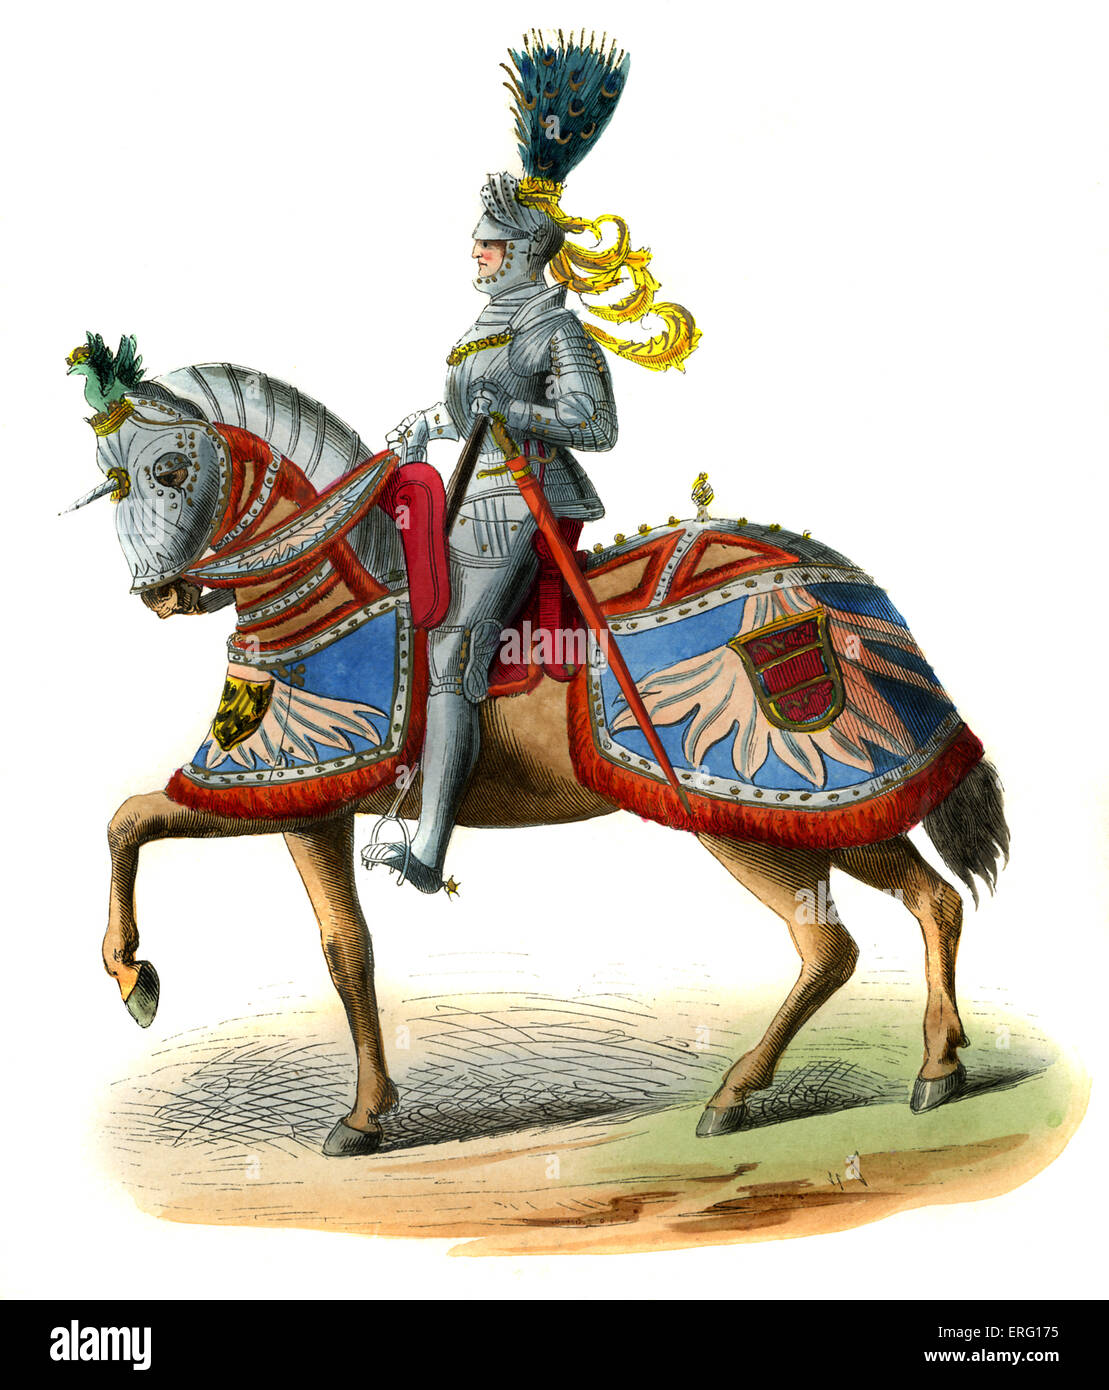 Emperor Maximilian I, of Habsburg, Holy Roman Emperor, shown atop a horse which wears elaborately decorated caparison - Stock Image